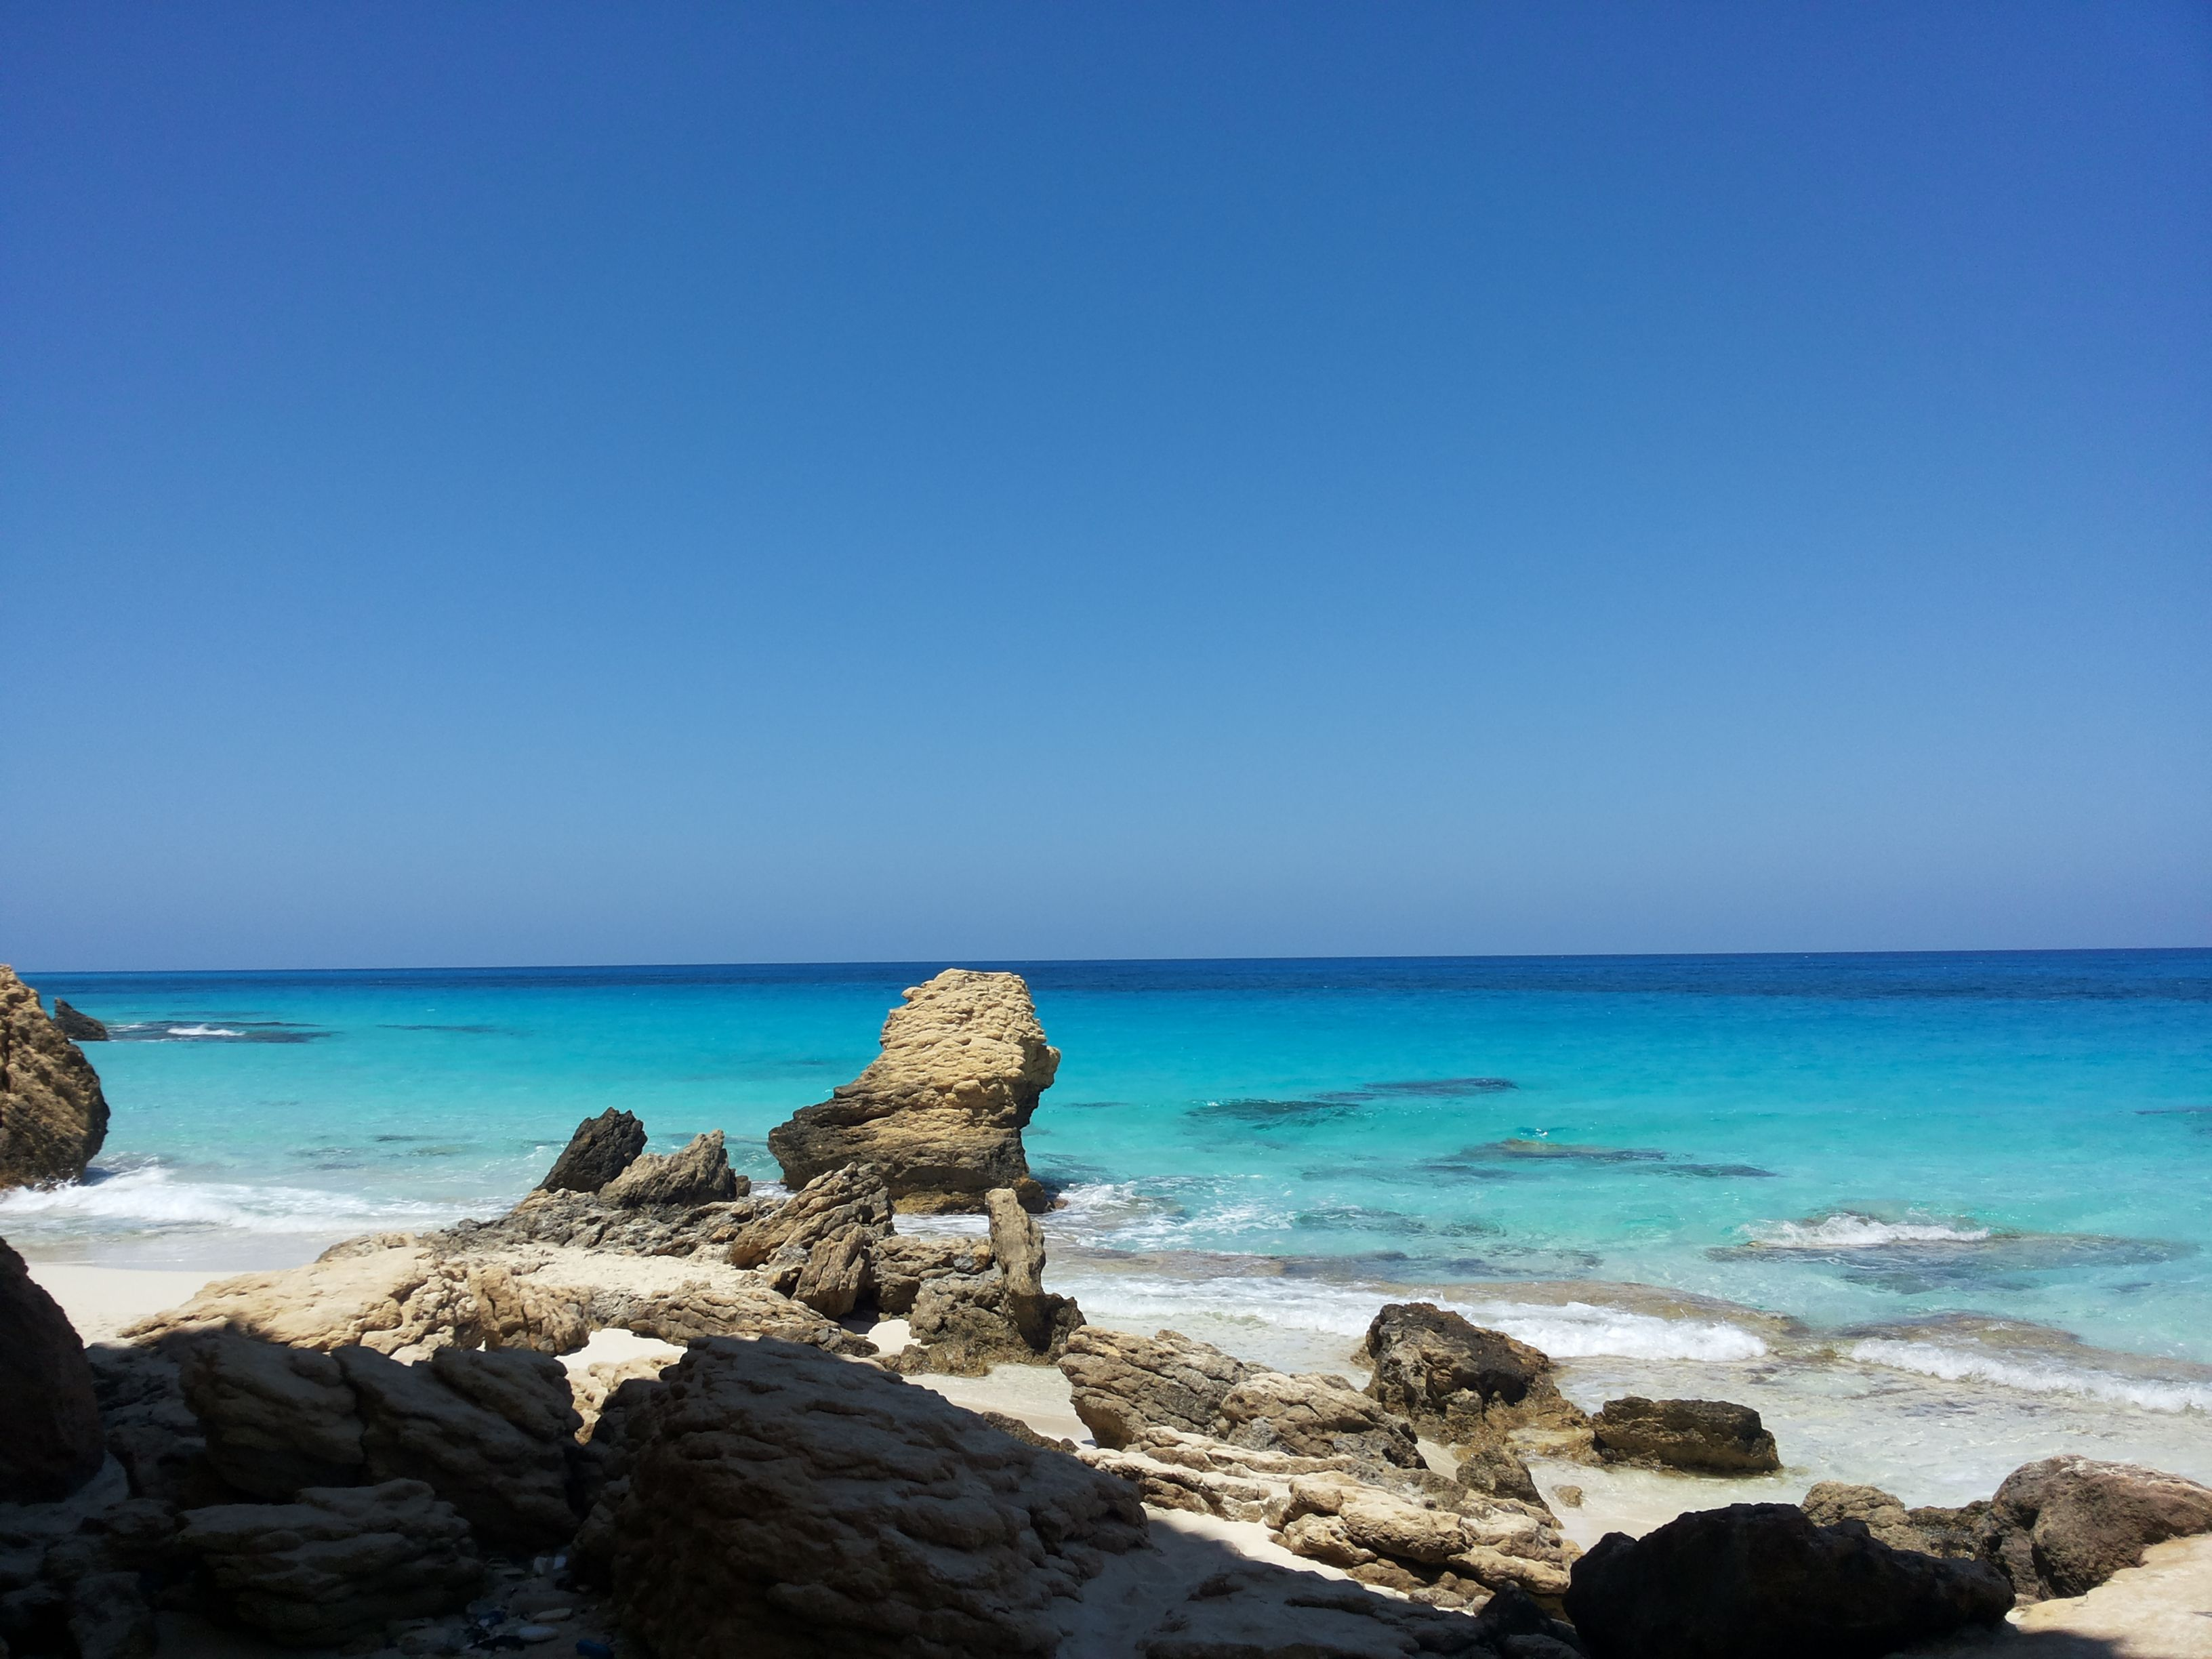 Marsa Matruh, summer 2013